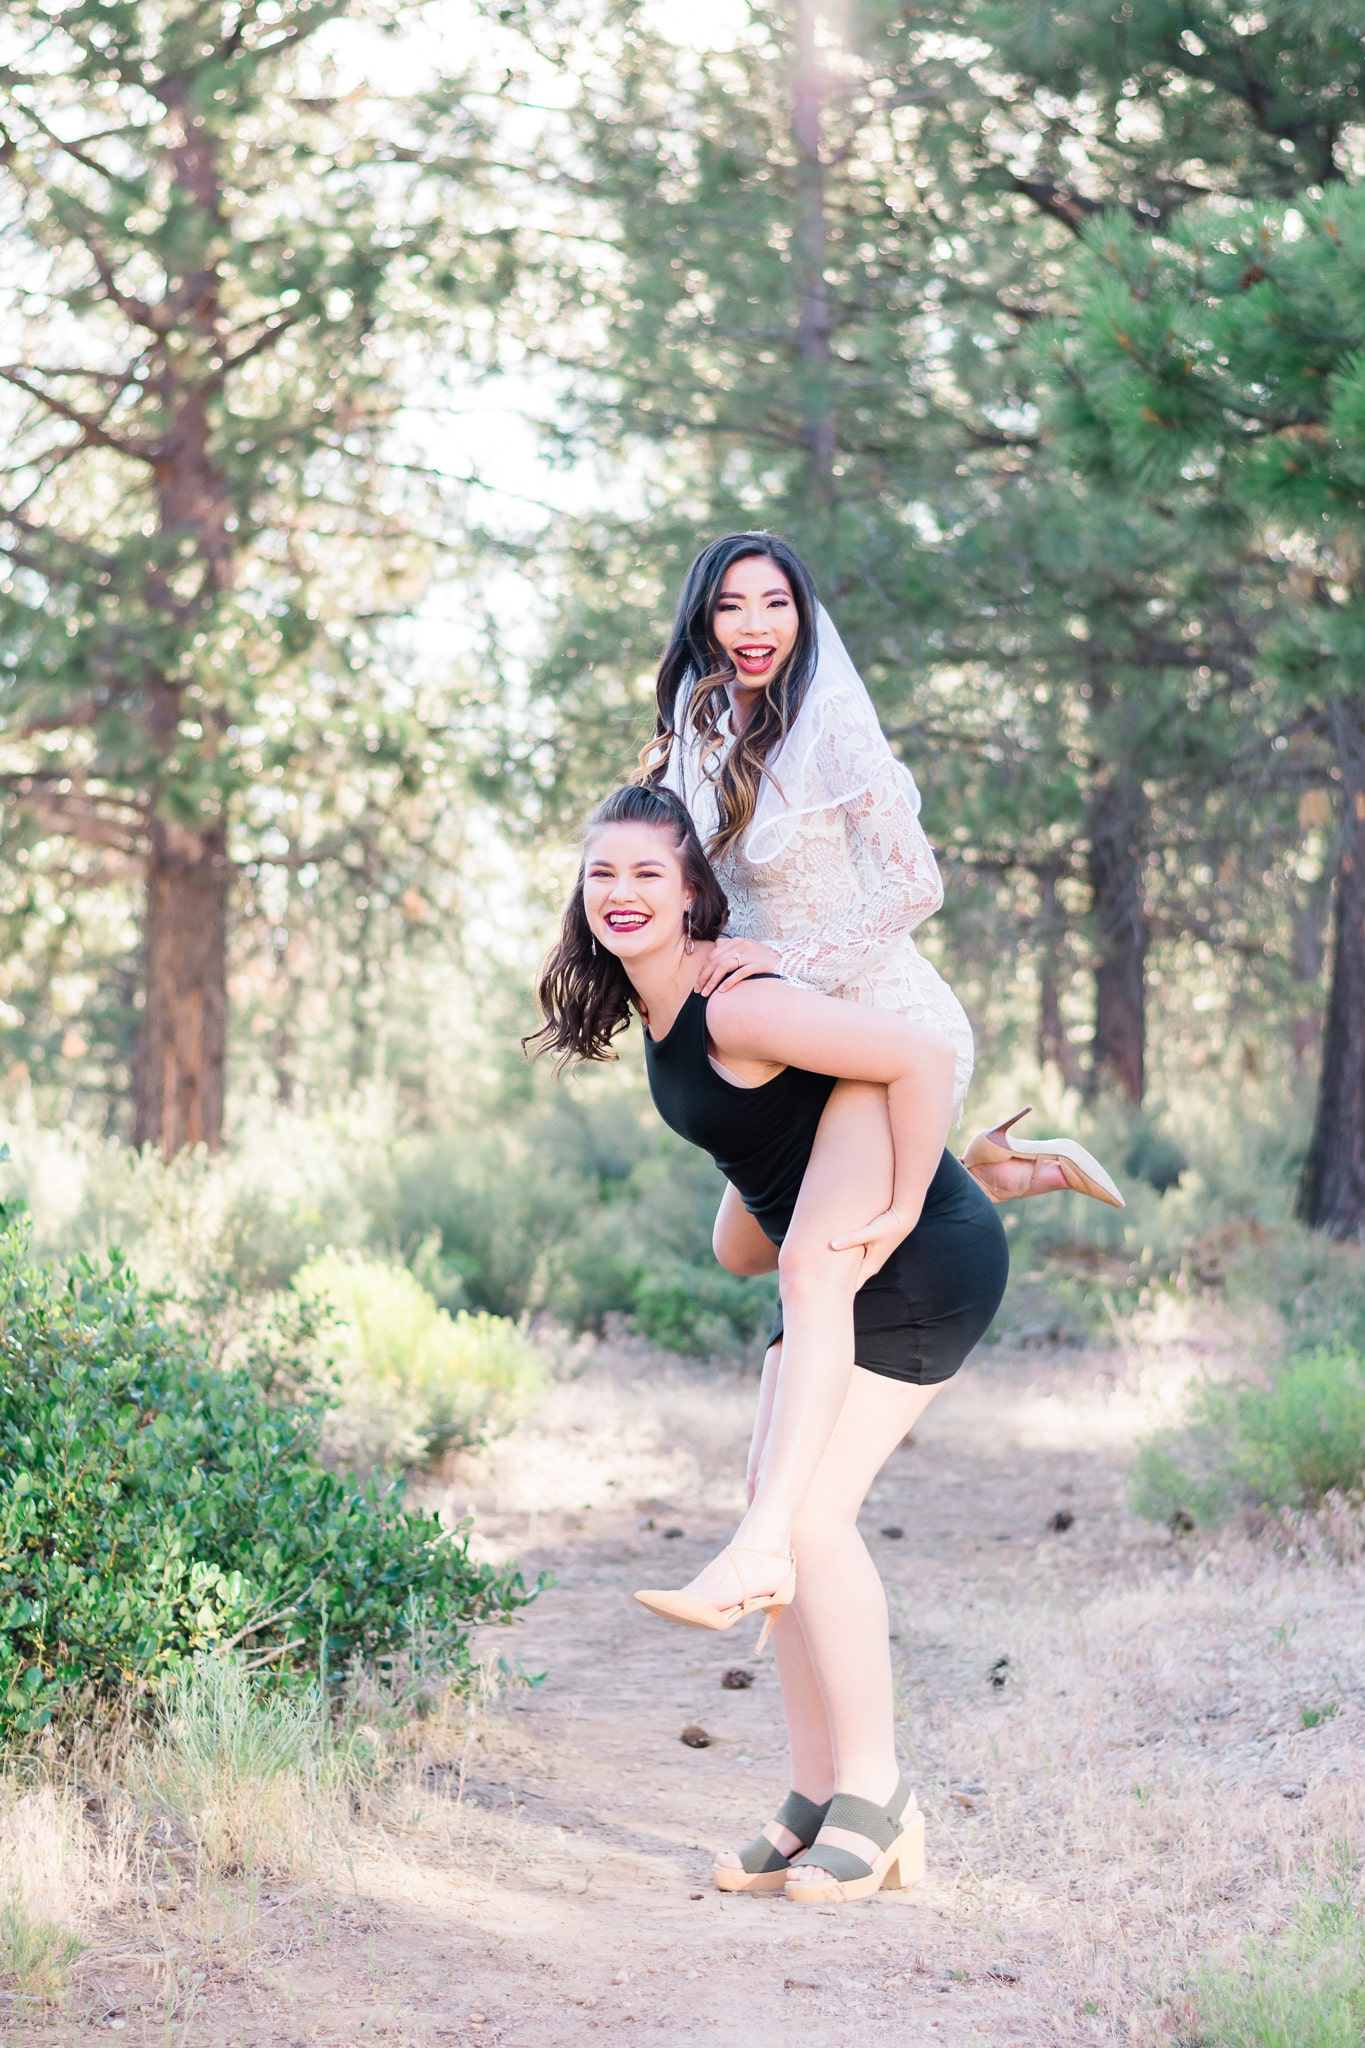 We stayed at the Seventh Mountain Resort in Bend, Oregon and had a pool party followed by a night out at one of Bend's best restaurants! Perfect tips for planning a central Oregon bachelorette party! -Elizabeth Hite Photography Portland Oregon Photographer